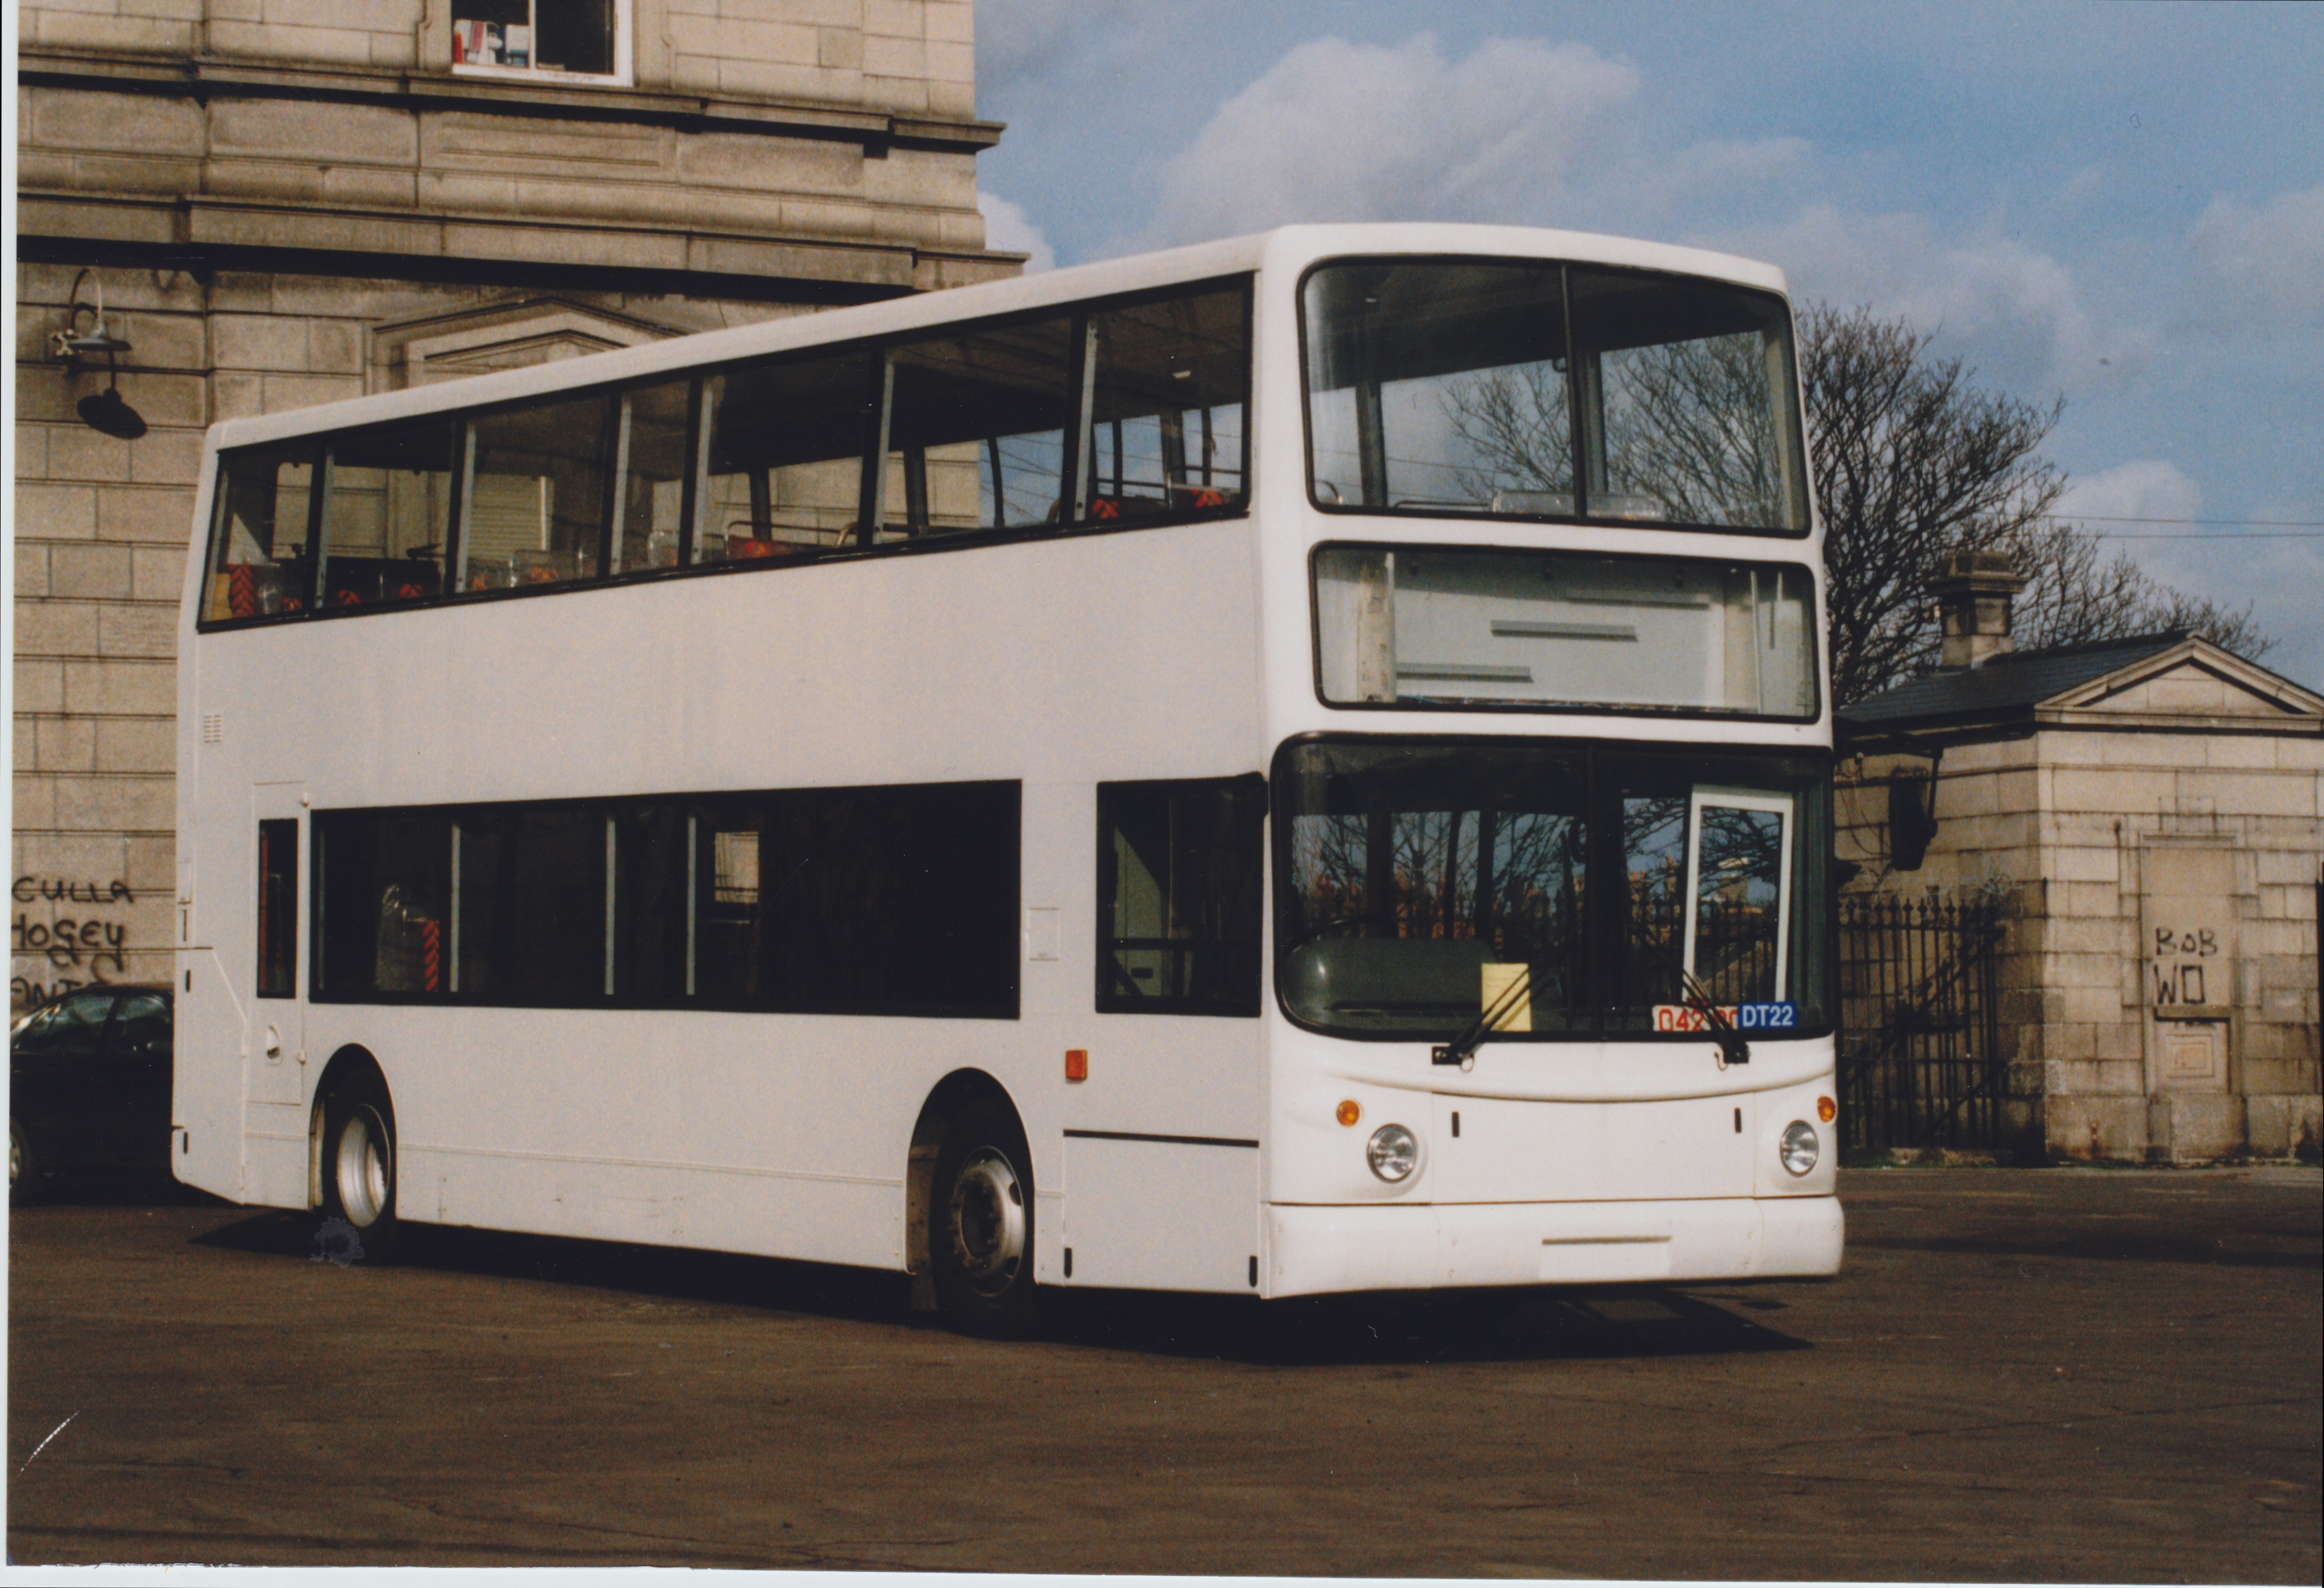 File:Pre-delivery Stagecoach Dennis Trident Alexander ...